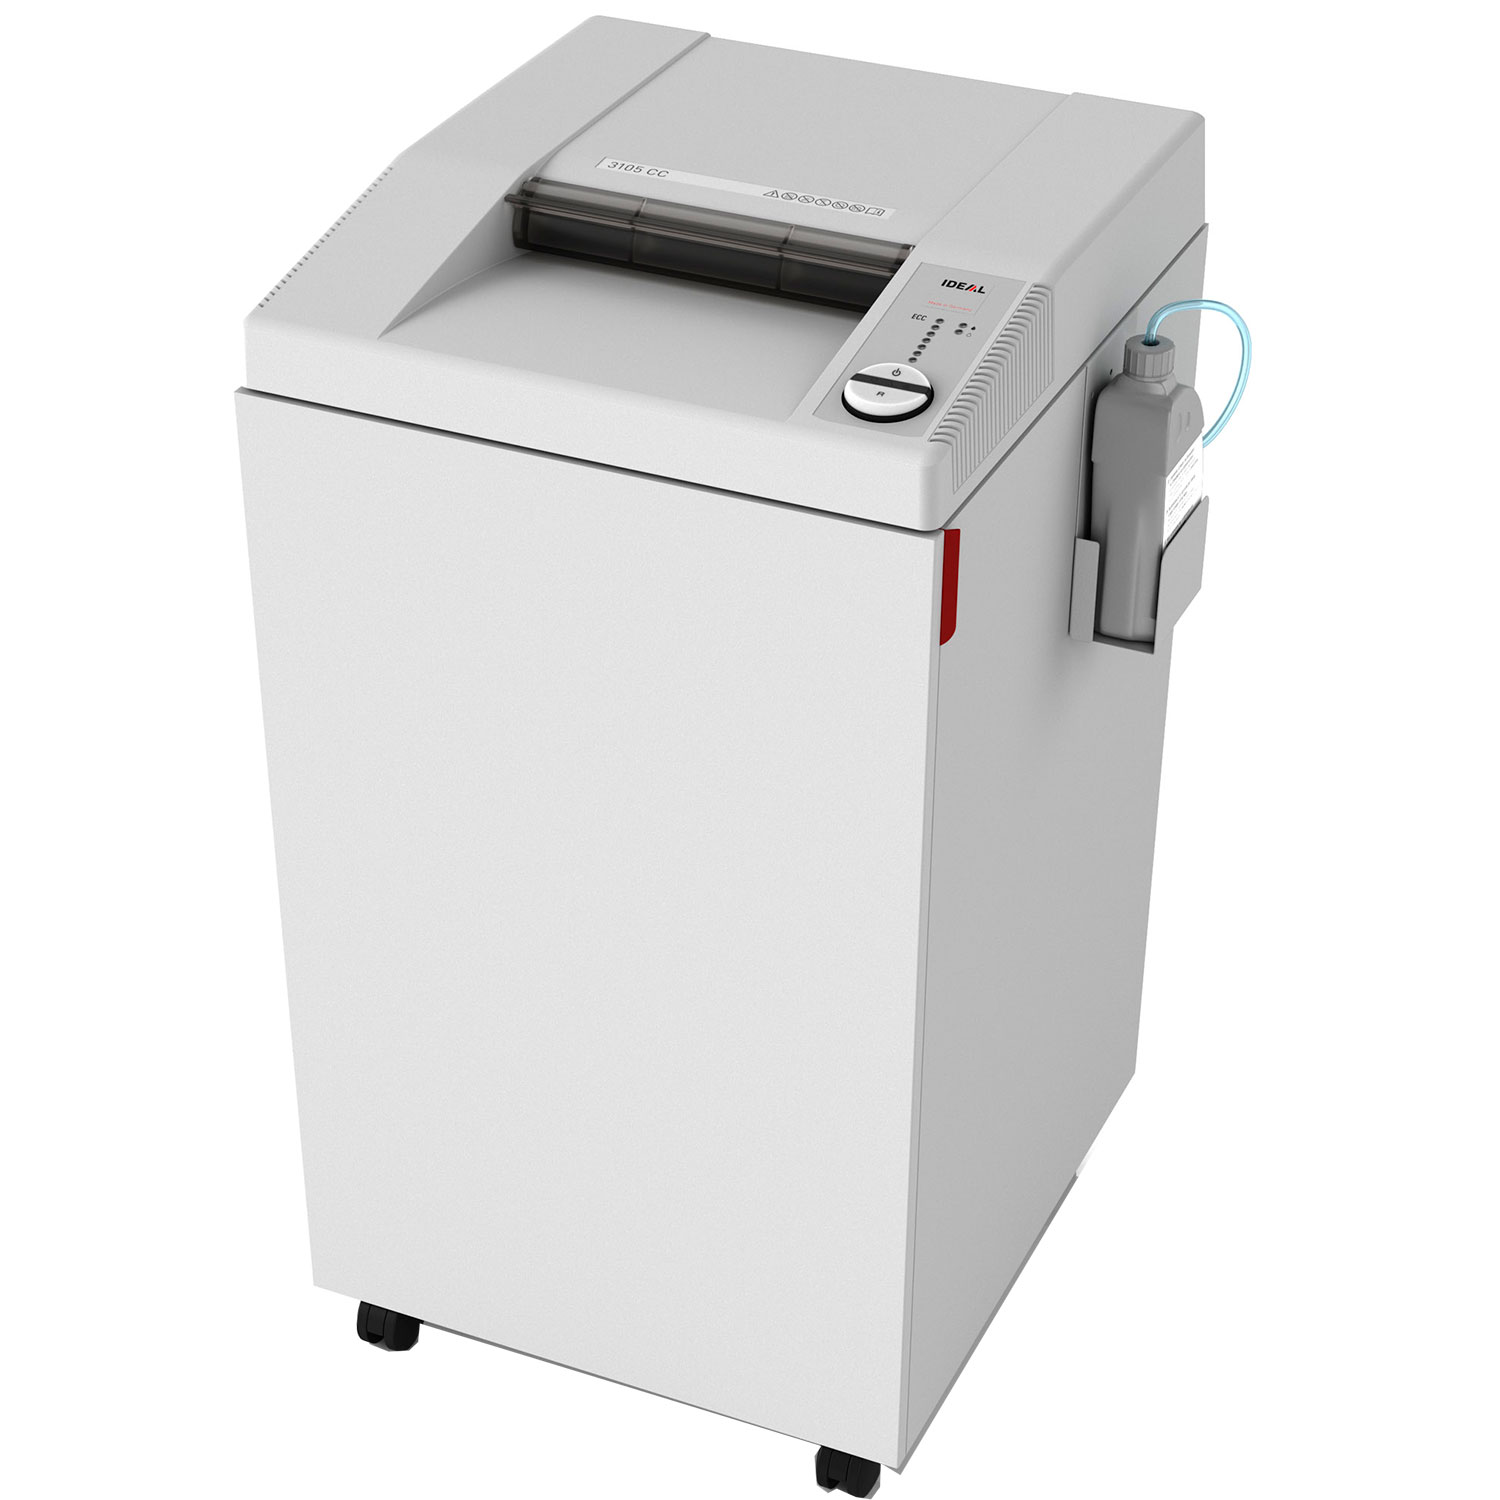 IDEAL 3105 Super Micro Cut 0.8 x 5mm Paper Shredder